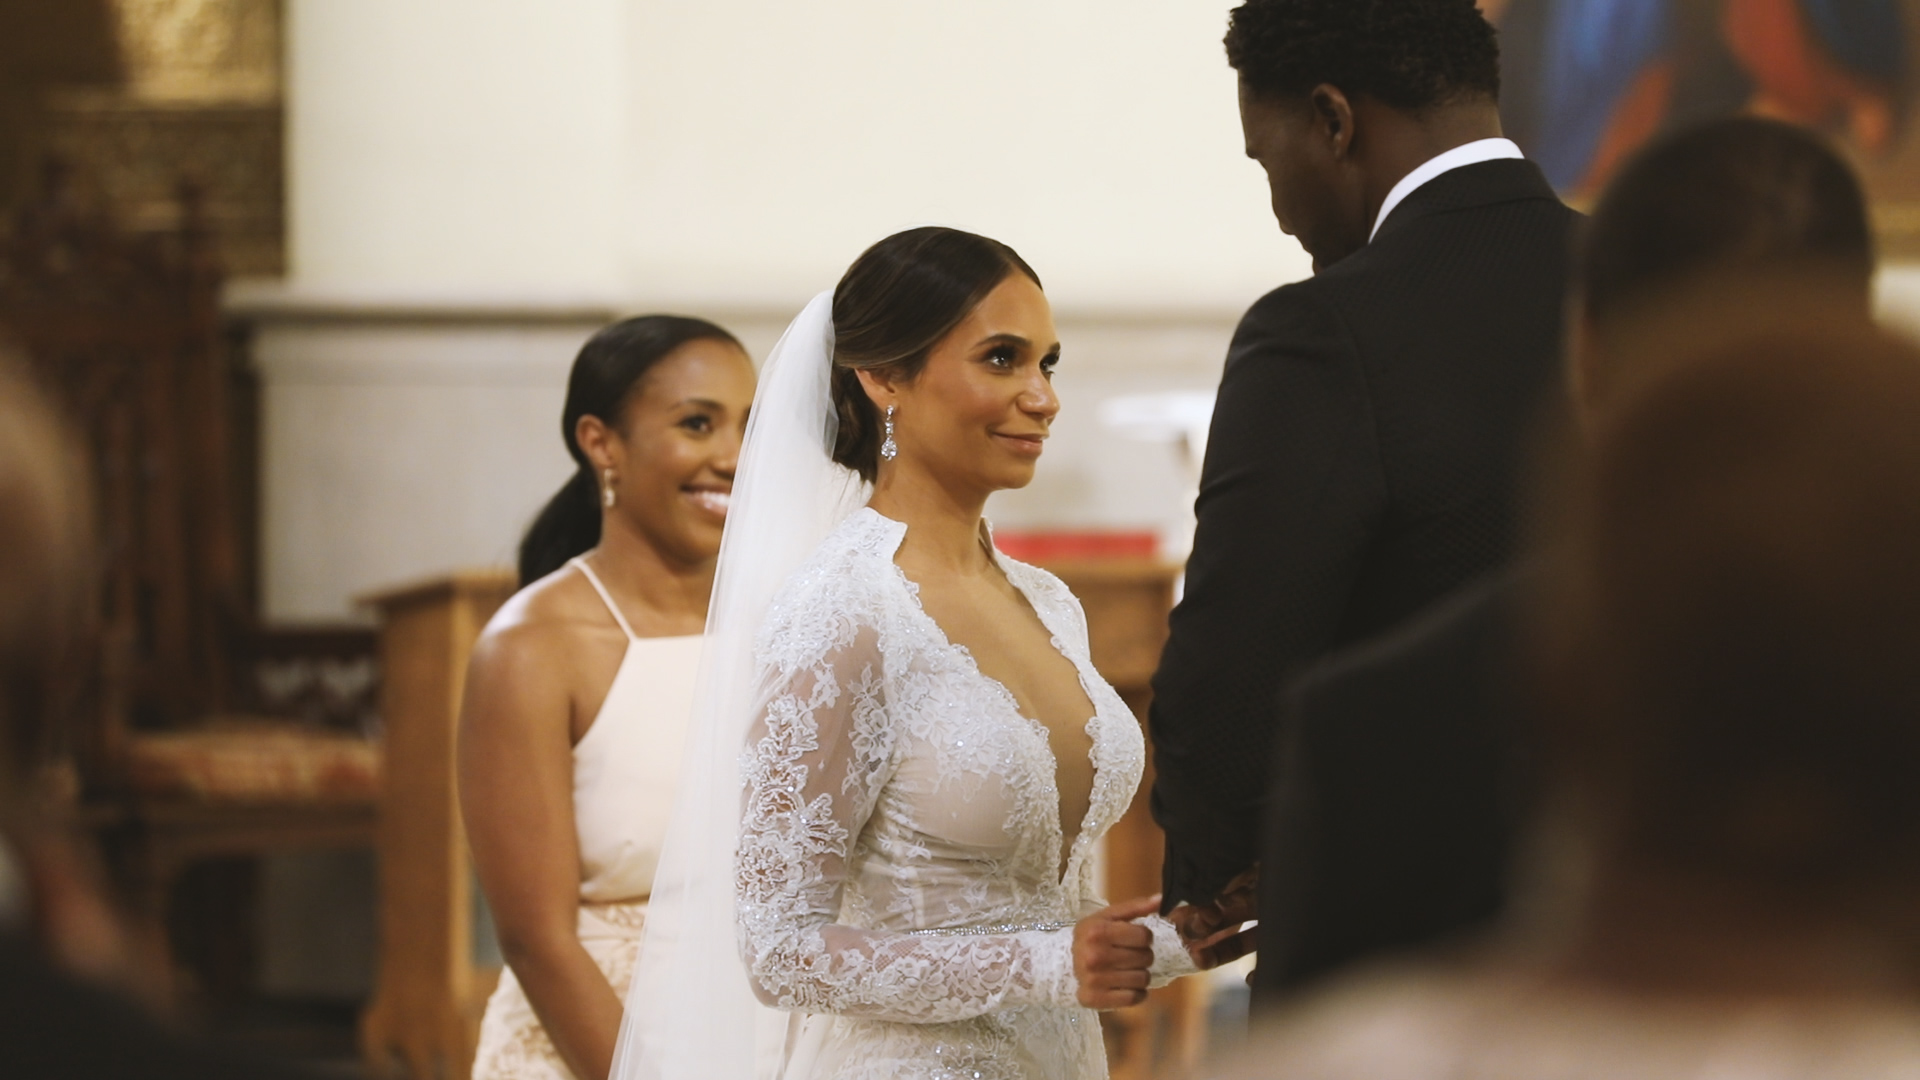 Immaculate Conception Wedding New Orleans - Bride Film